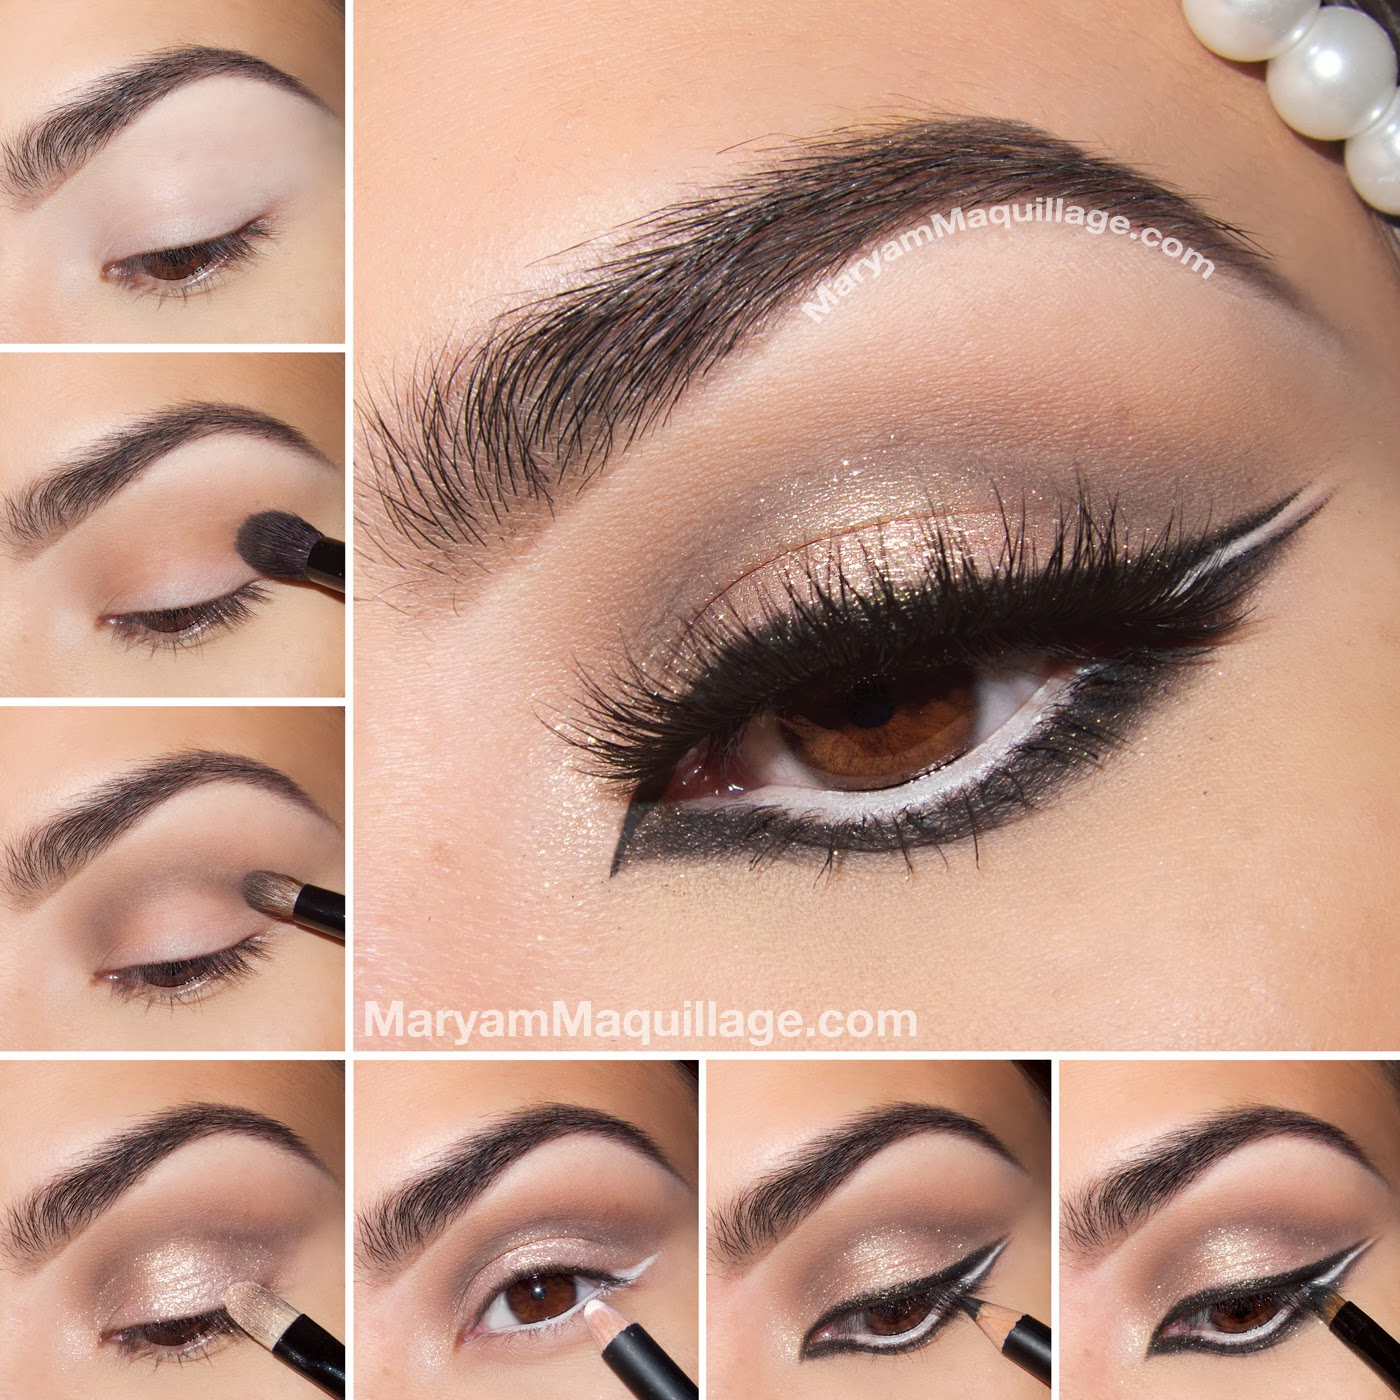 Maryam Maquillage Wintry Exotic Arabic Makeup Tutorial